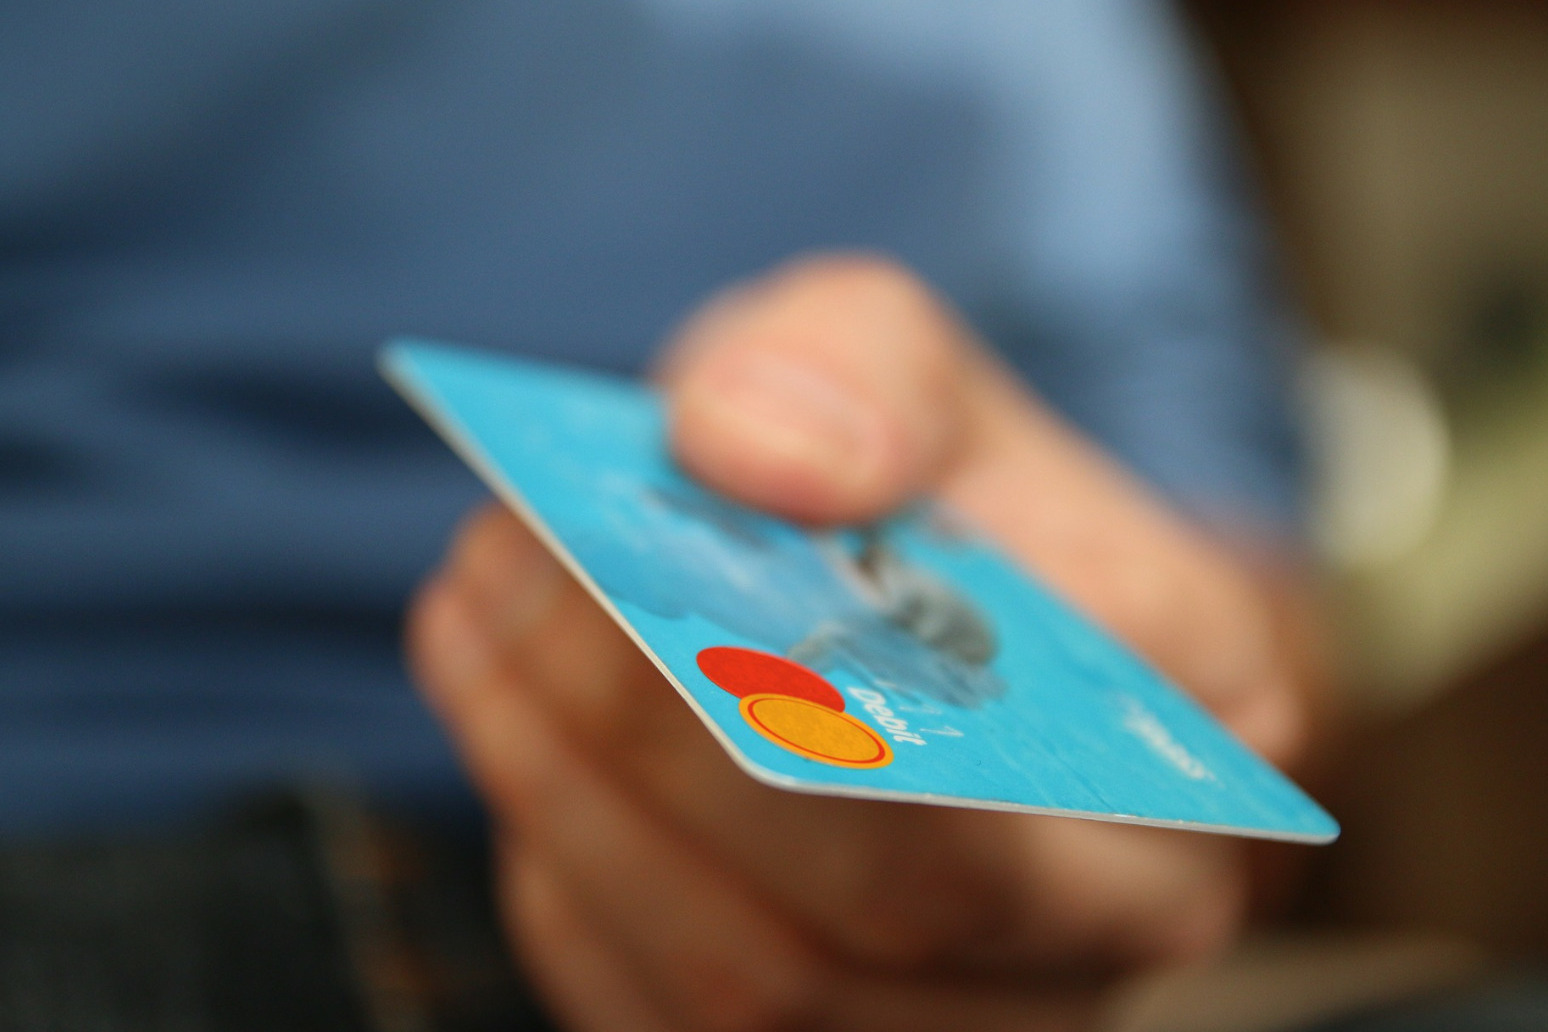 BIG INCREASE IN AVERAGE HOUSEHOLD DEBT, STUDY SUGGESTS